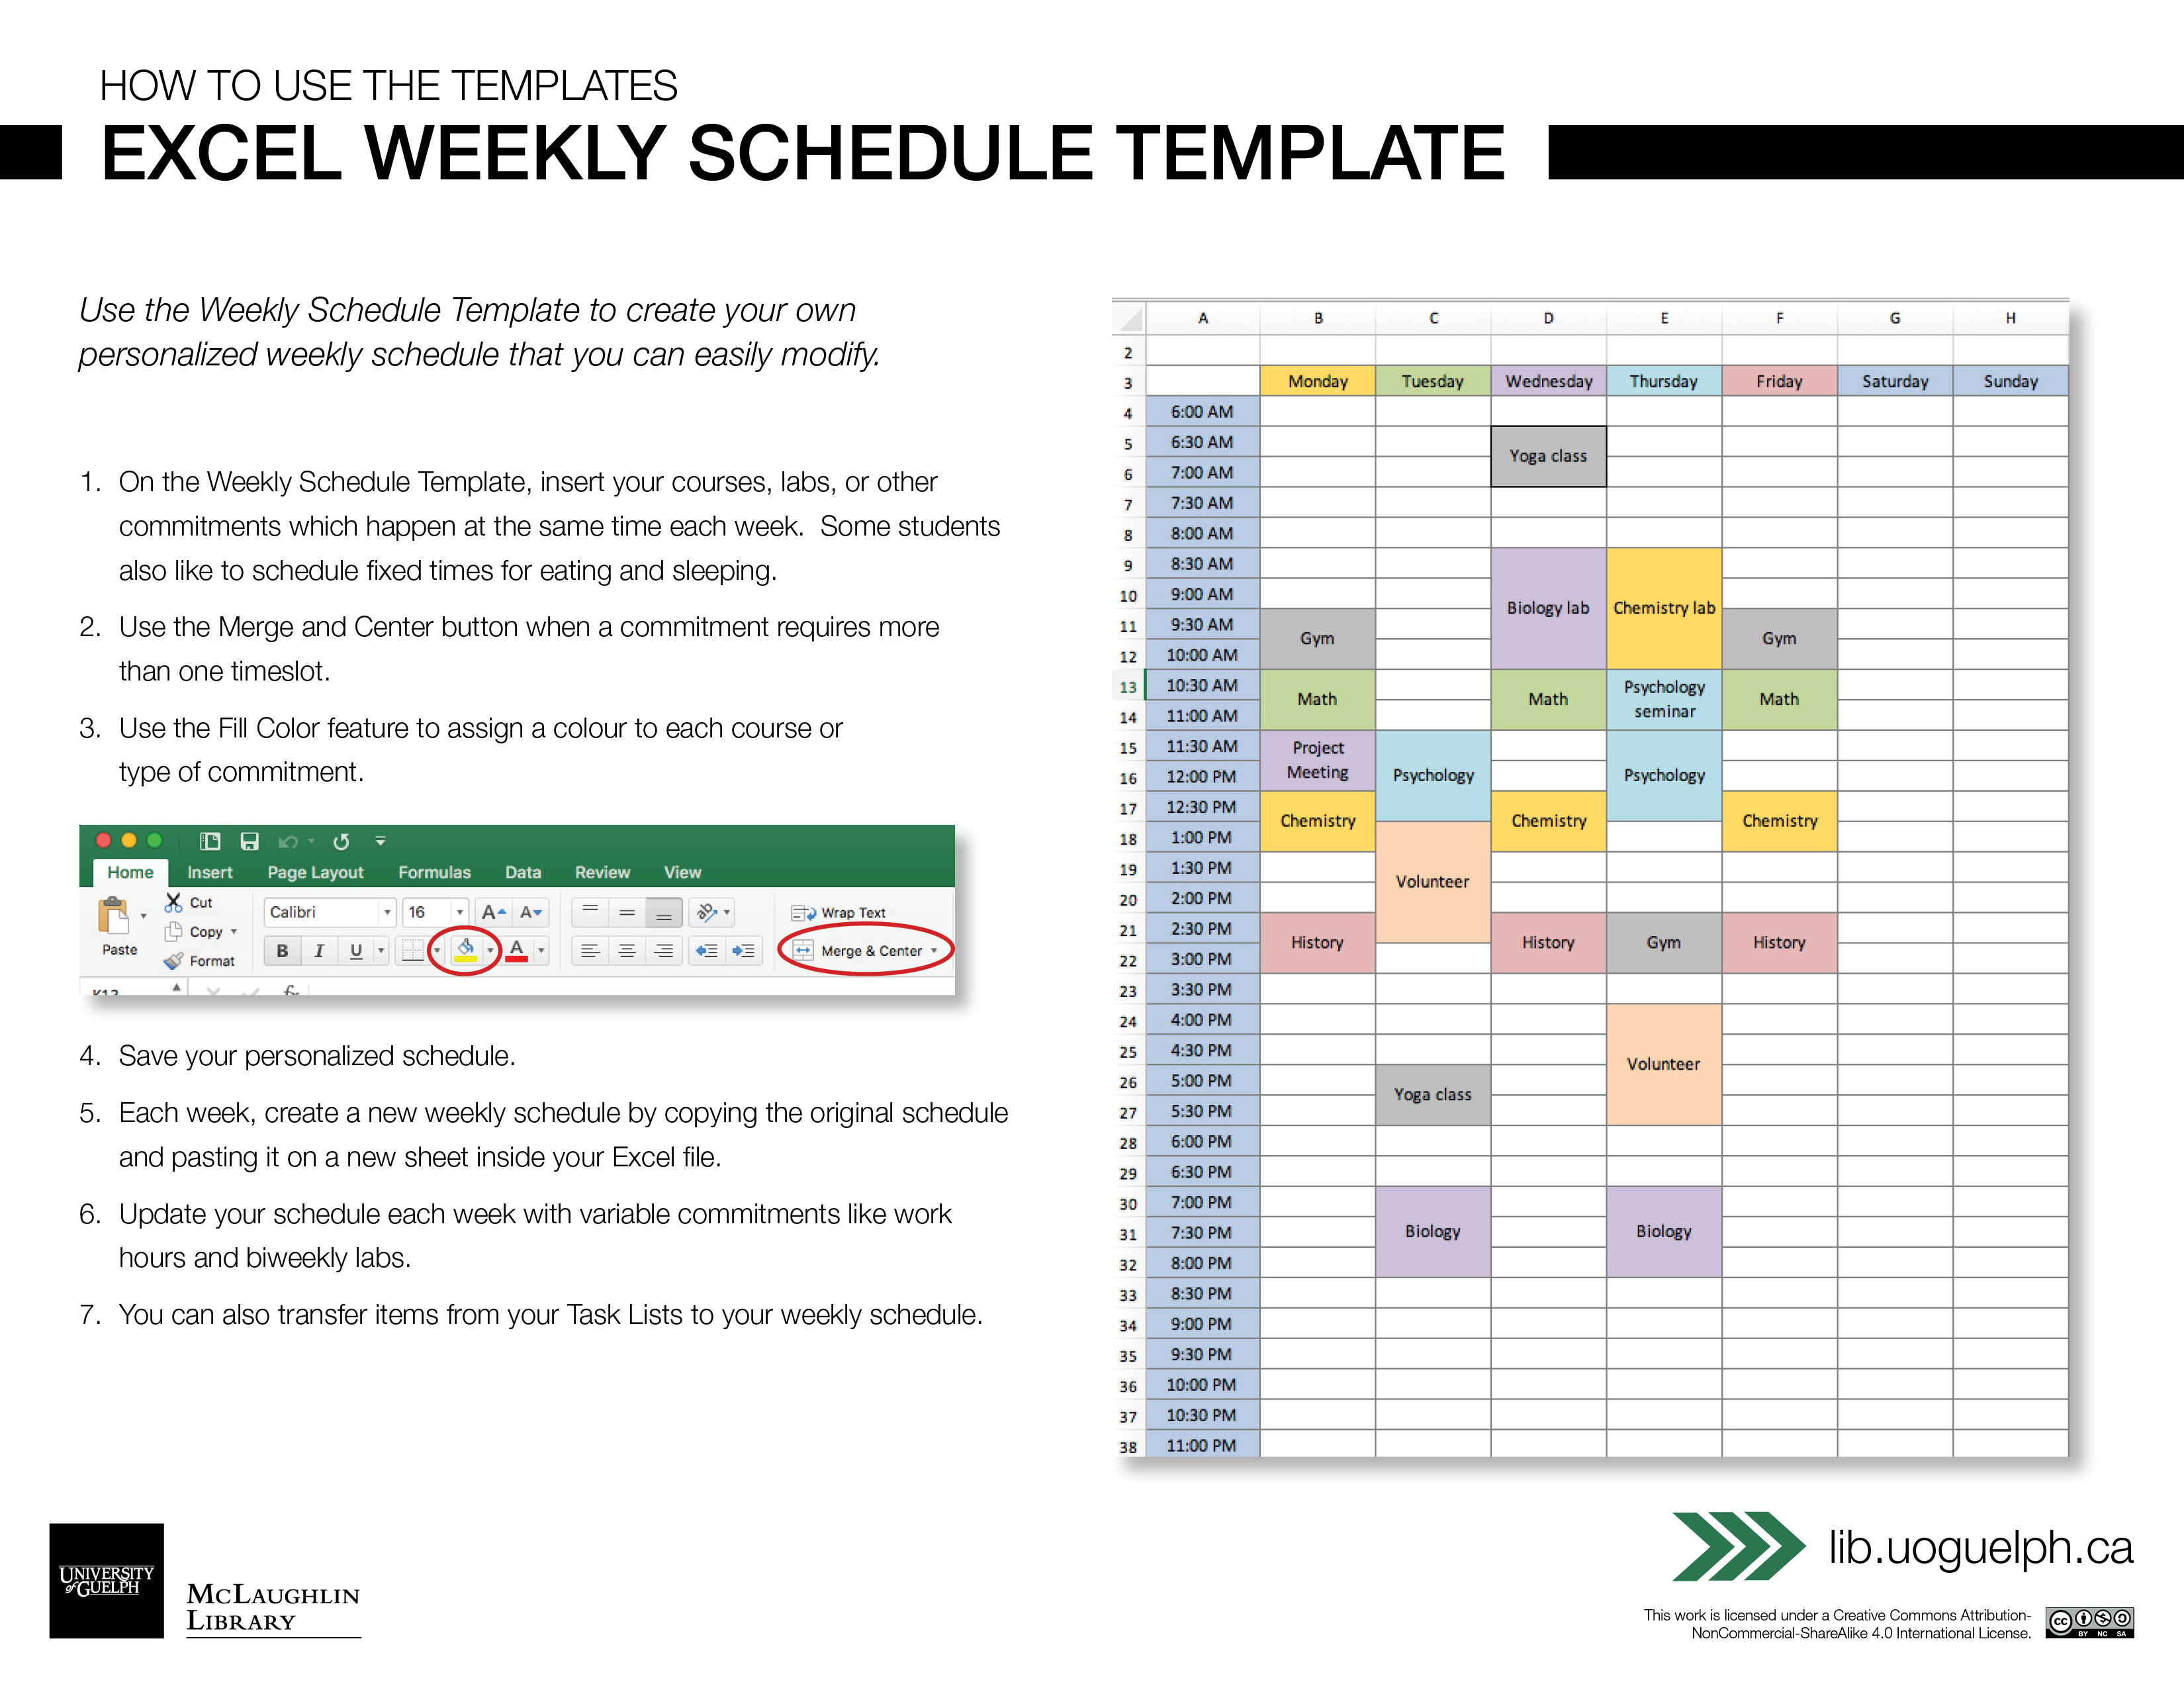 Excel Weekly Schedule Template Digital Learning Commons